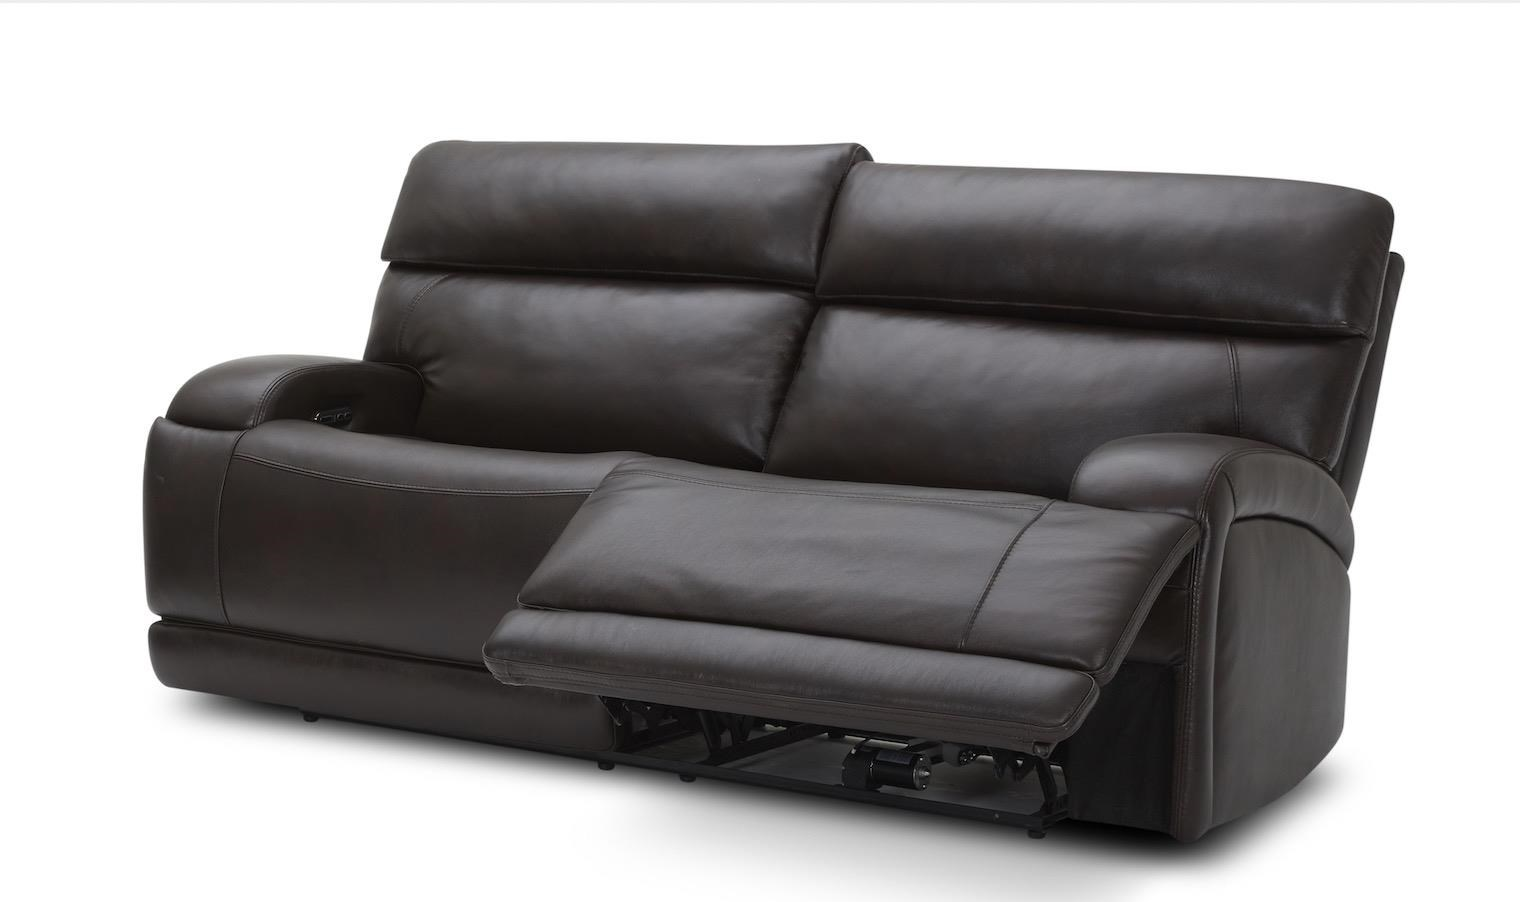 Akron TRIPLE Power Reclining Leather Sofa by K.C. at Walker's Furniture